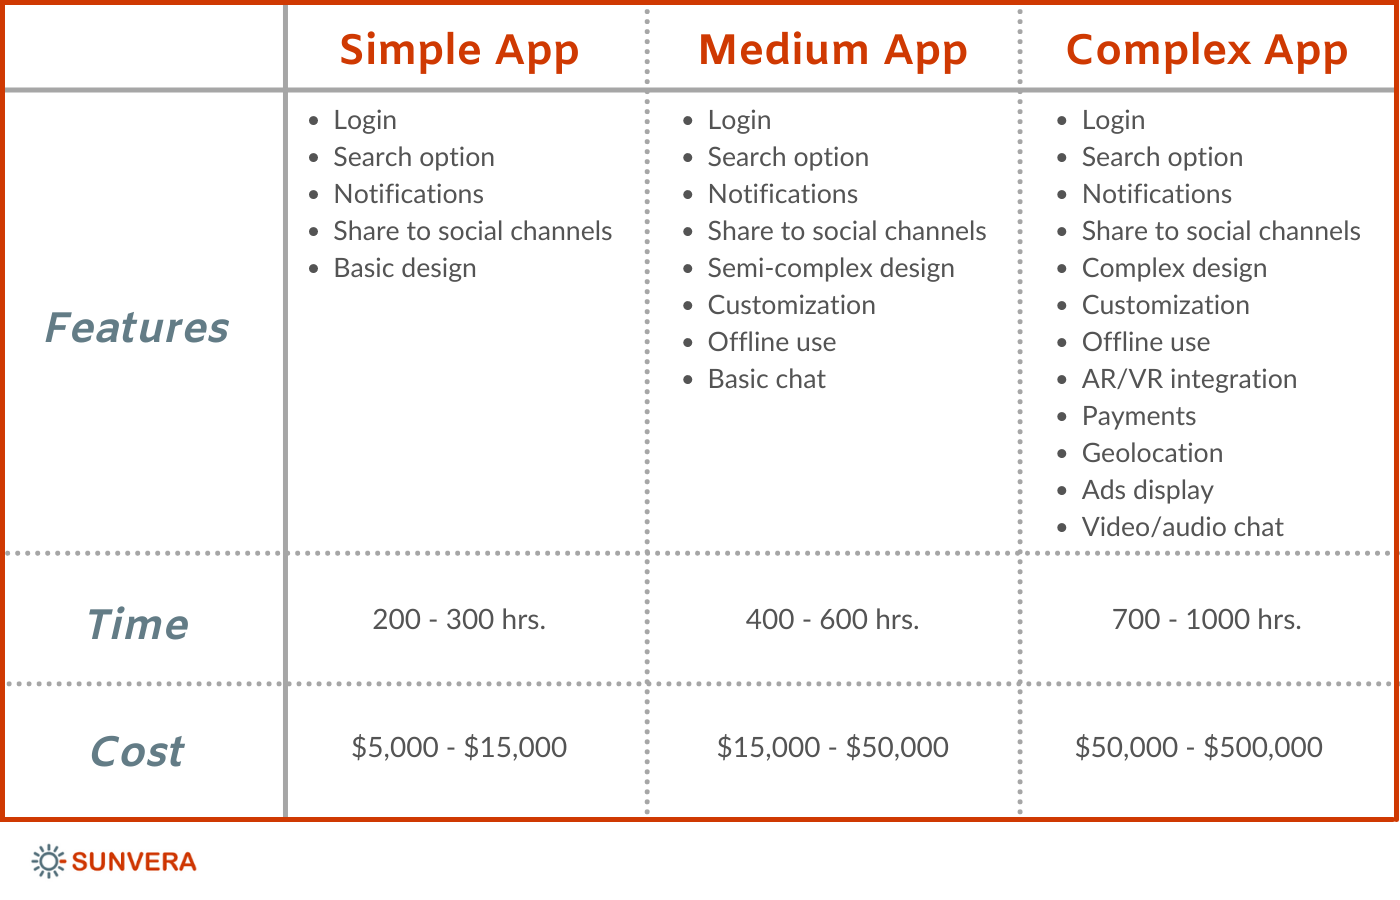 simple, medium, and complex apps features, time, cost etc.